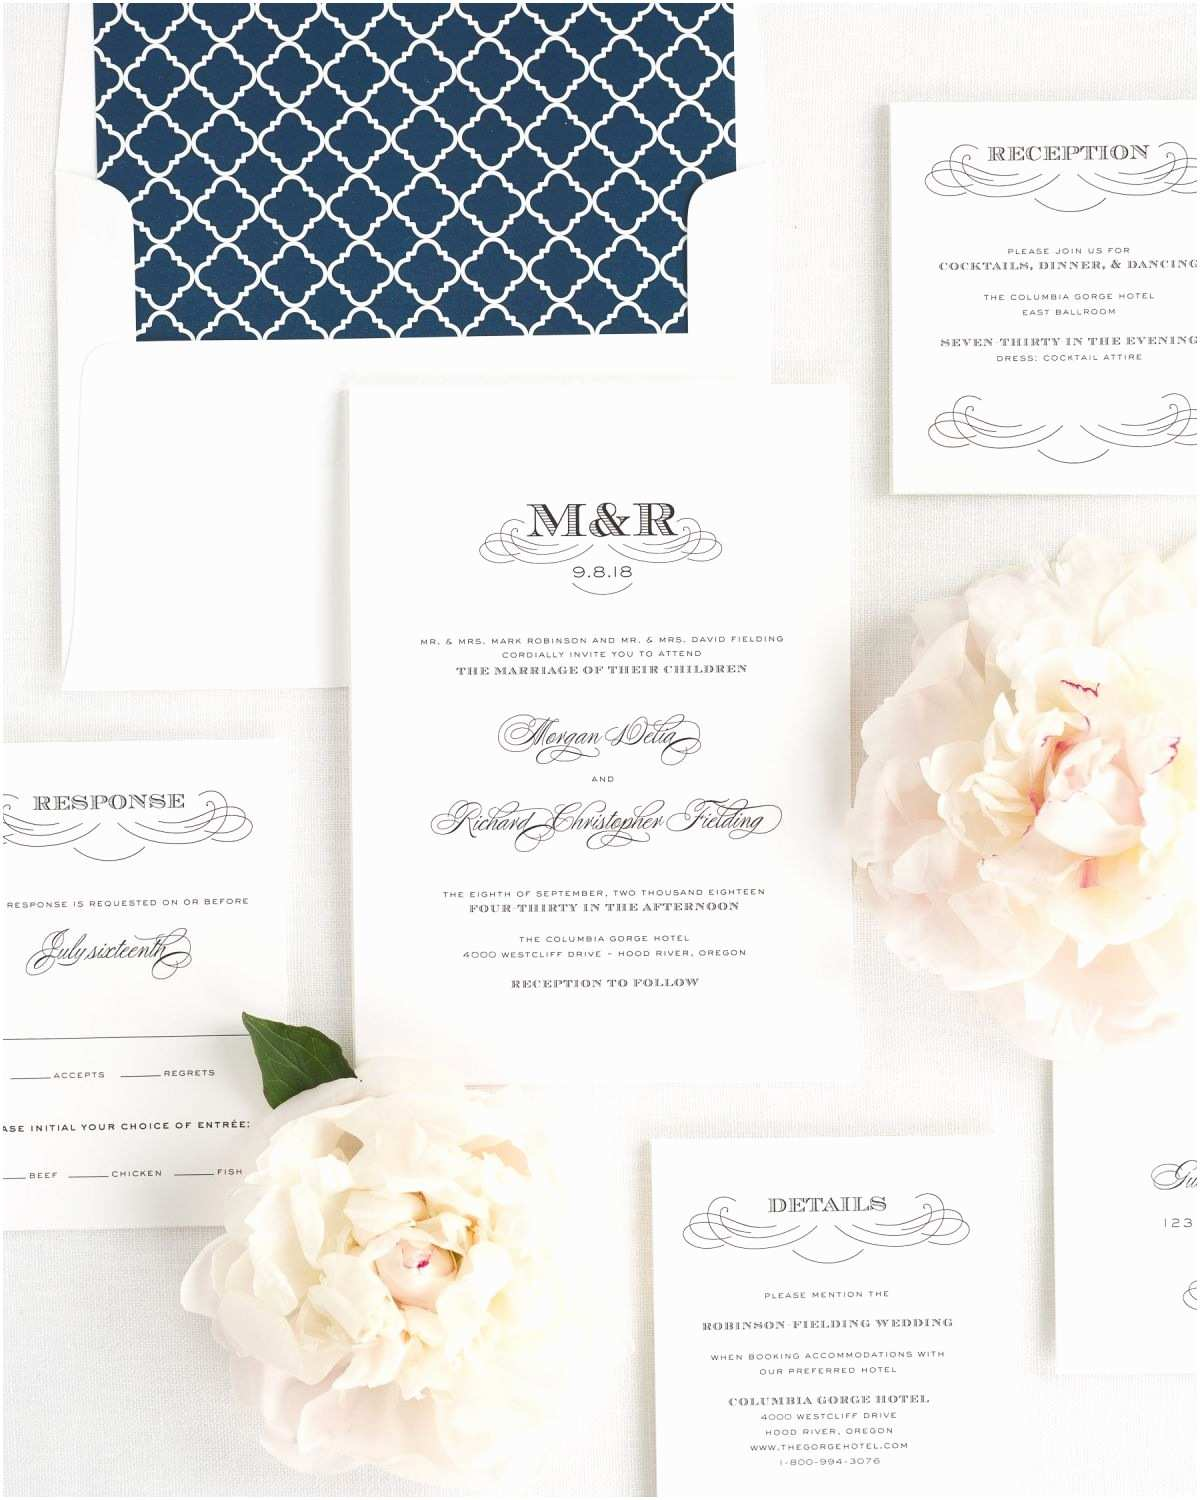 Monogram Wedding Invitations Antique Monogram Wedding Invitations Wedding Invitations